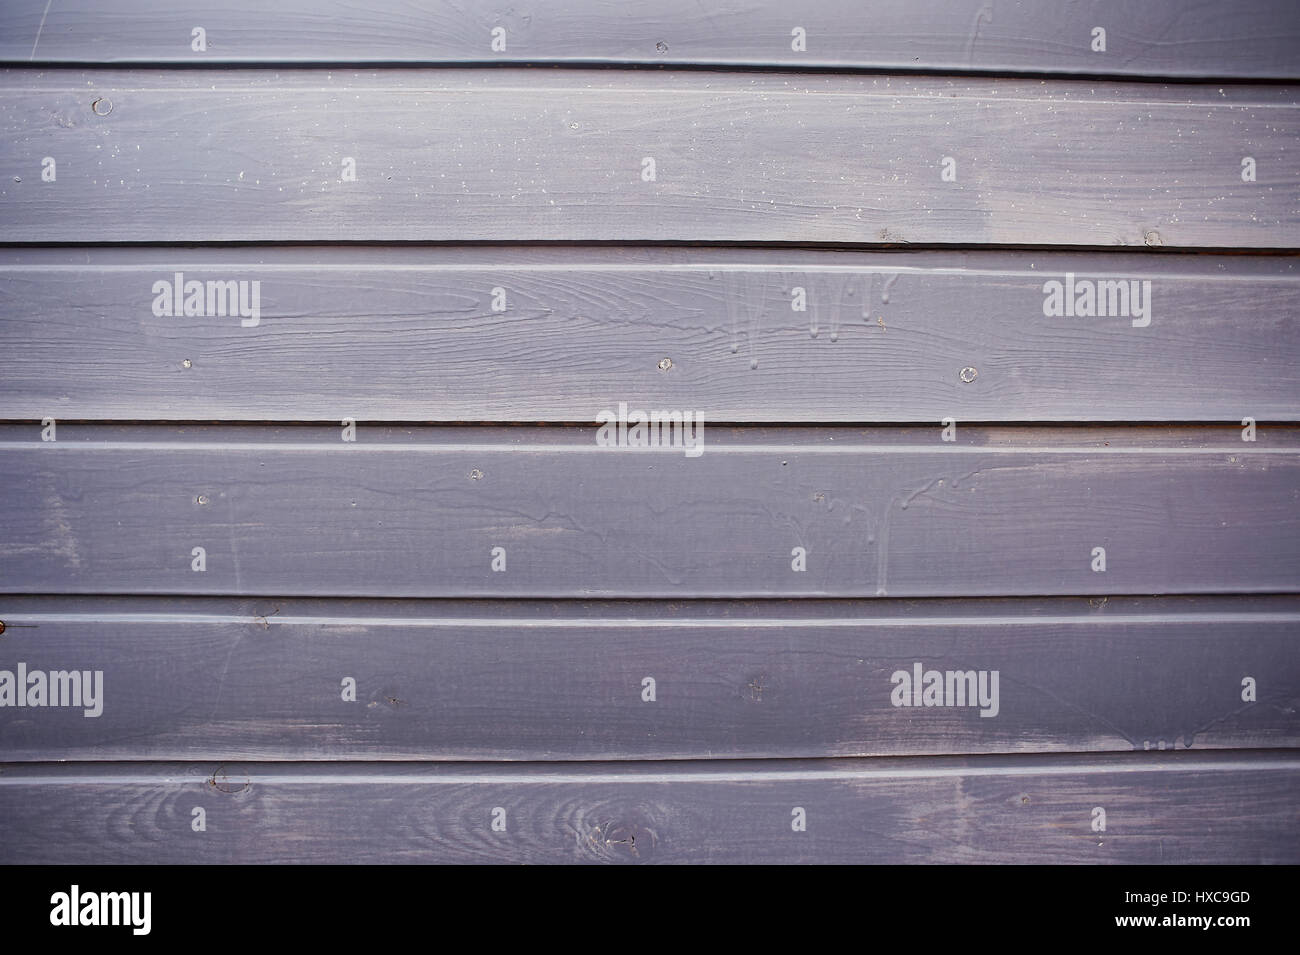 Wood texture painted ashen grey paint Drips of paint Stock Photo